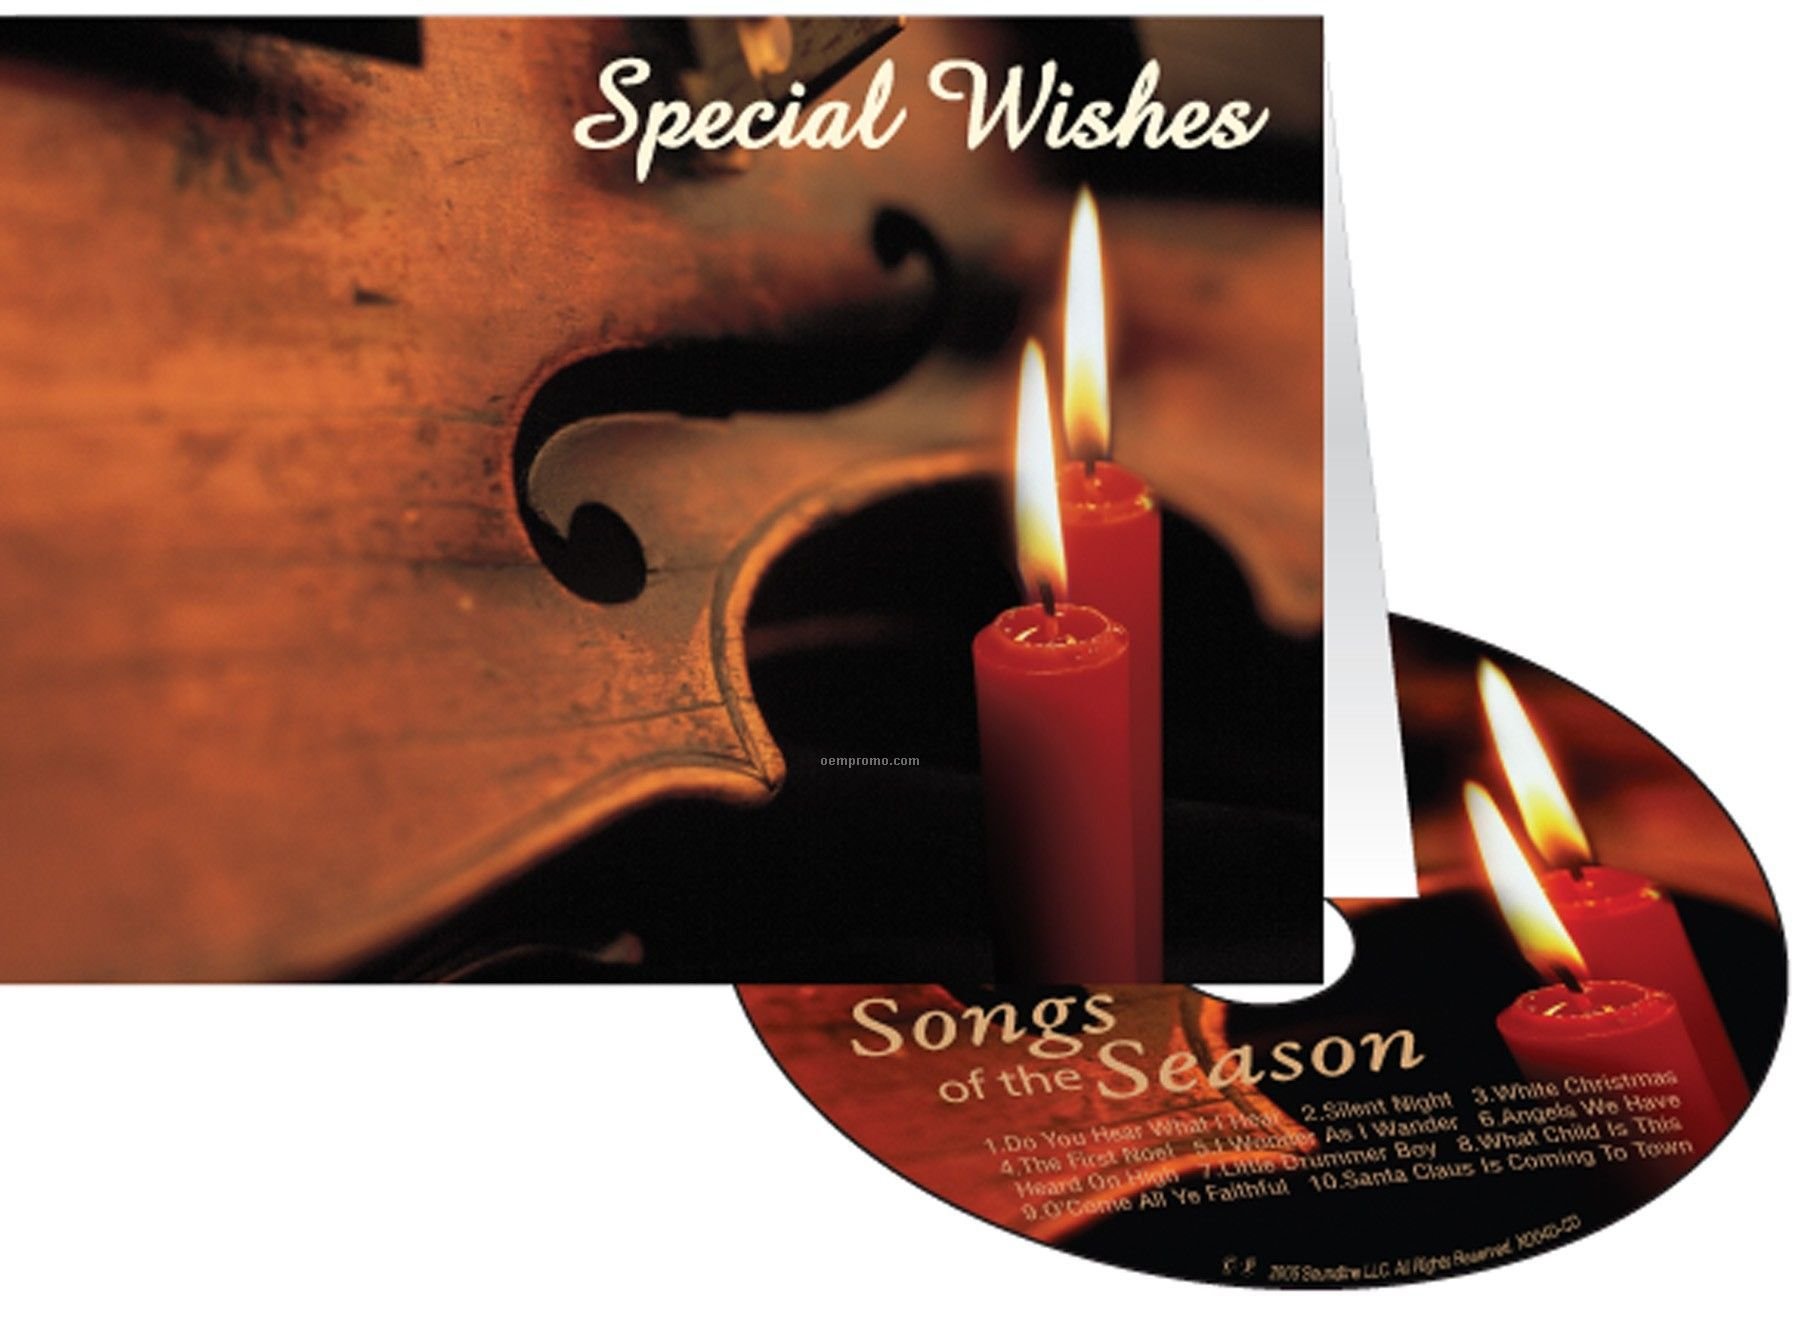 Candles & Violin Special Wishes Holiday Greeting Card With Matching CD